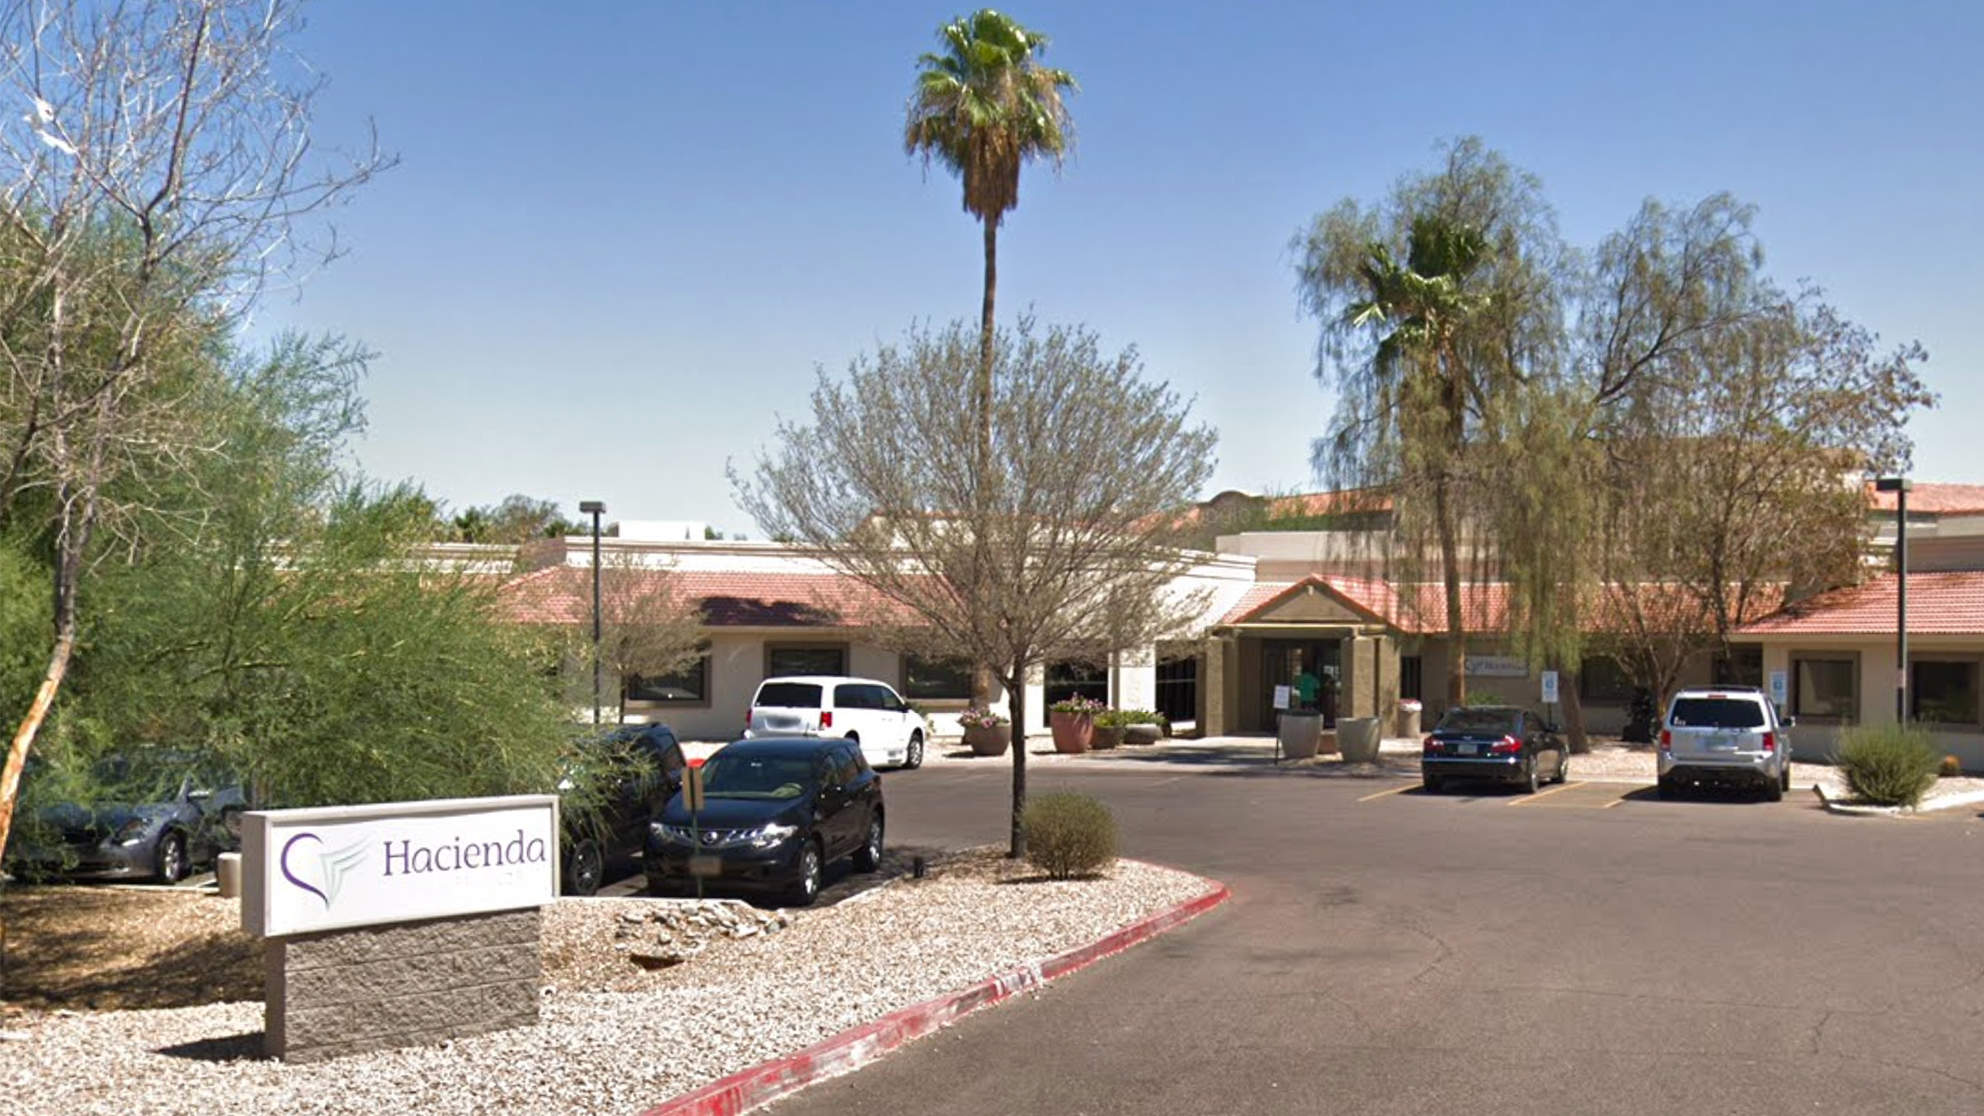 Facility Where Woman in Vegetative State Gave Birth Was Cited After Staff Walked in on Nude Patient